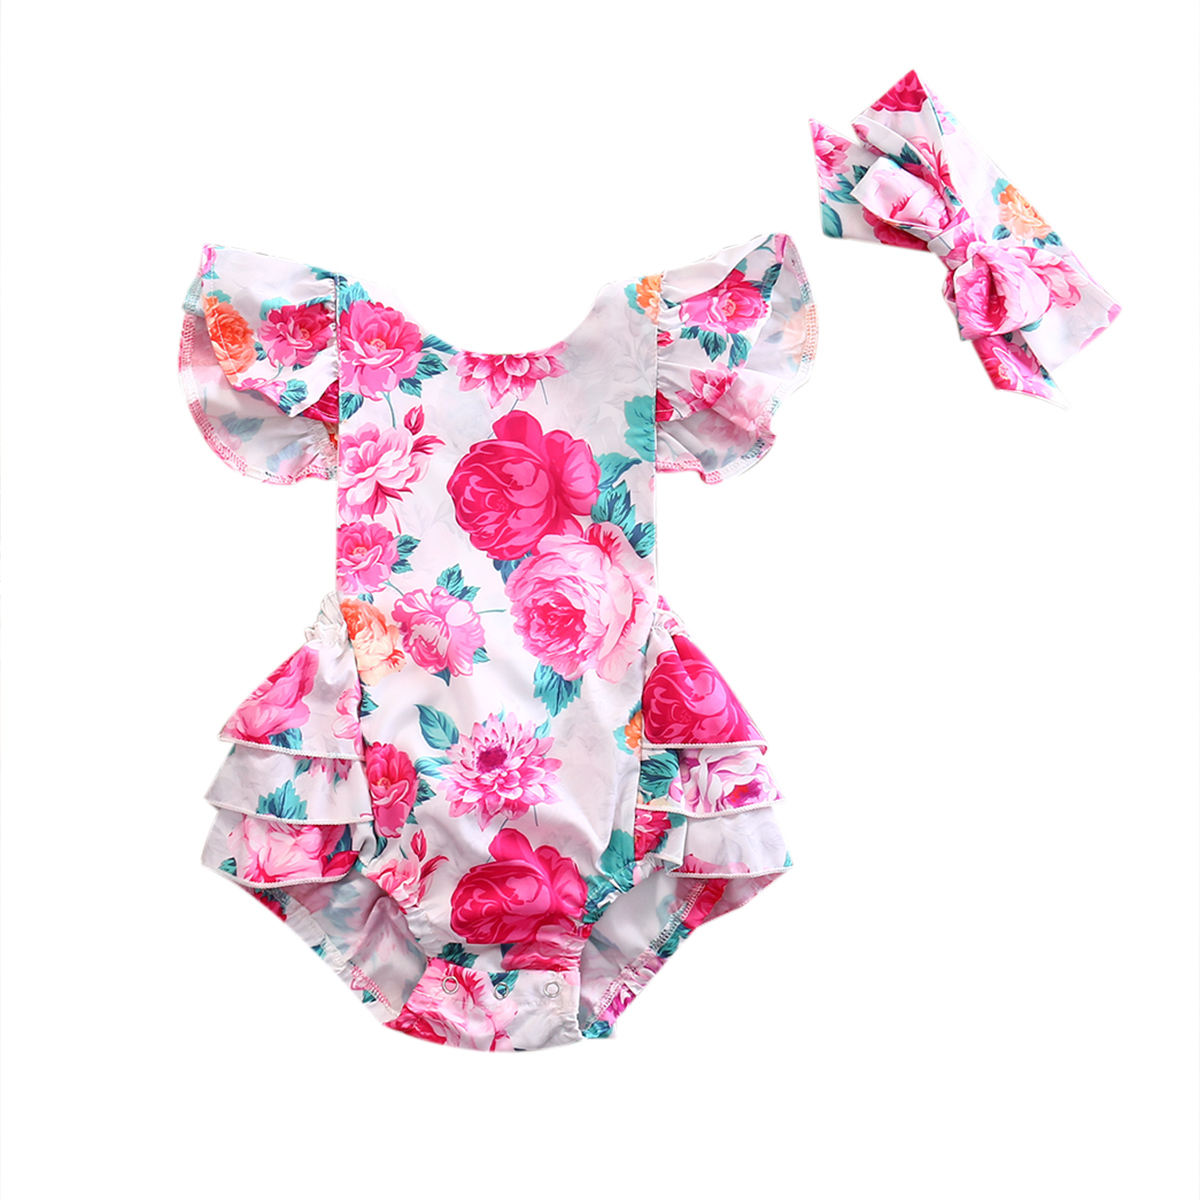 2PCS Newborn Baby Girls Floral Clothing Ruffles Skirted Kids Jumpsuit Headband Infant Bebes Sunsuit Outfits Clothes 2017 sequins mermaid newborn baby girl summer tutu skirted romper bodysuit jumpsuit headband 2pcs outfits kids clothing set